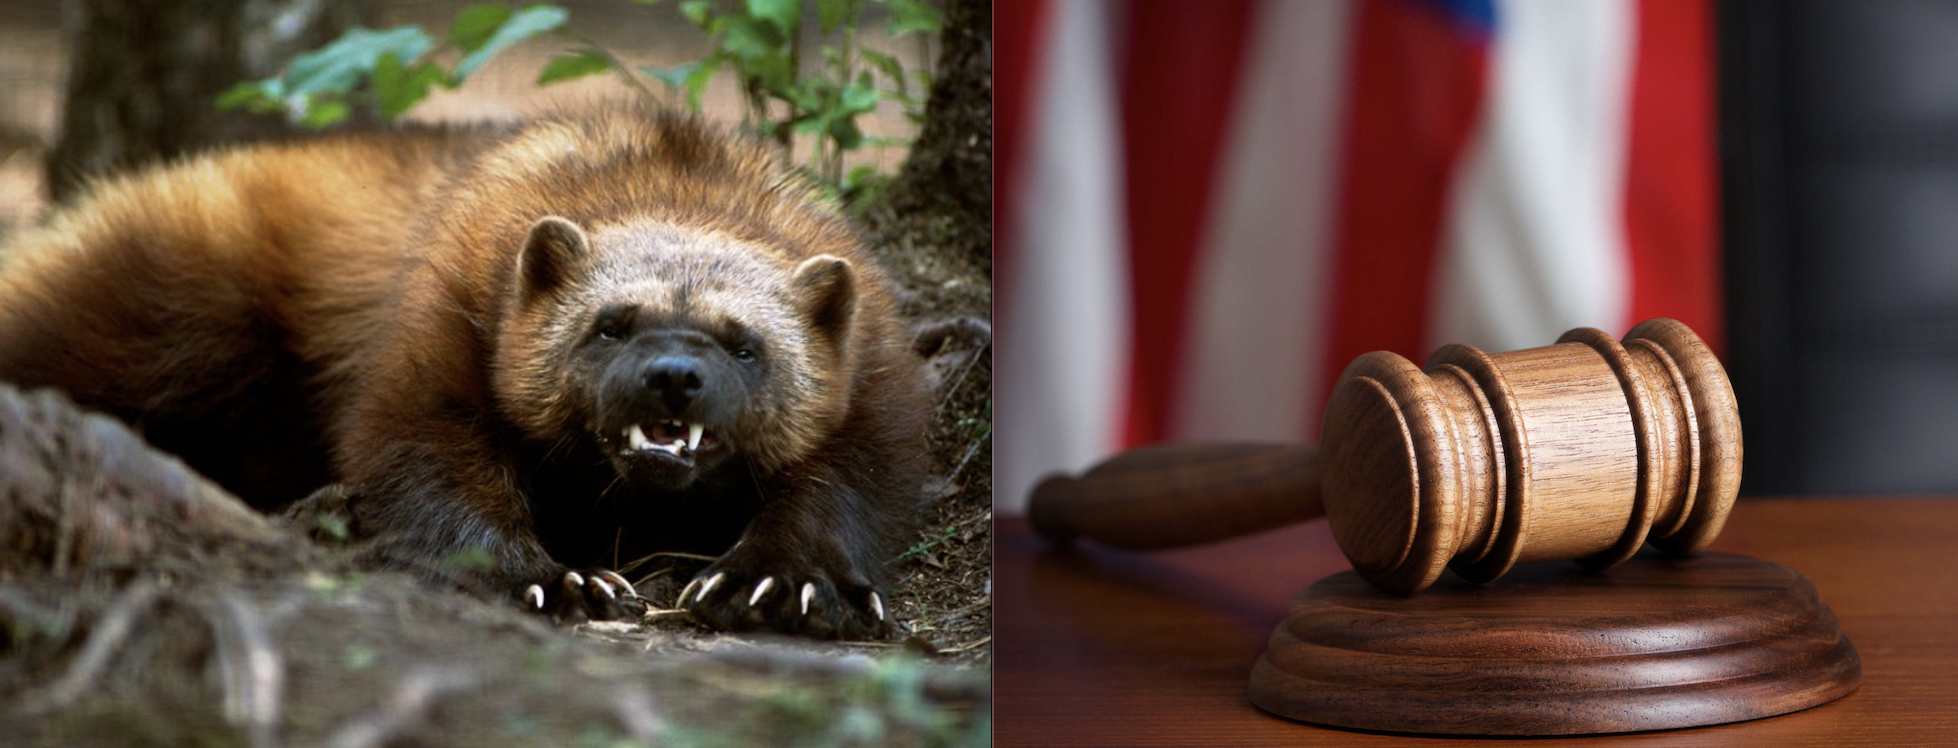 Epic Lawsuits: 24 Wildlife Orgs Sue Trump Admin for Failing to Protect Wolverine After FOIAed Documents Reveal Politically-Motivated ESA Review Process